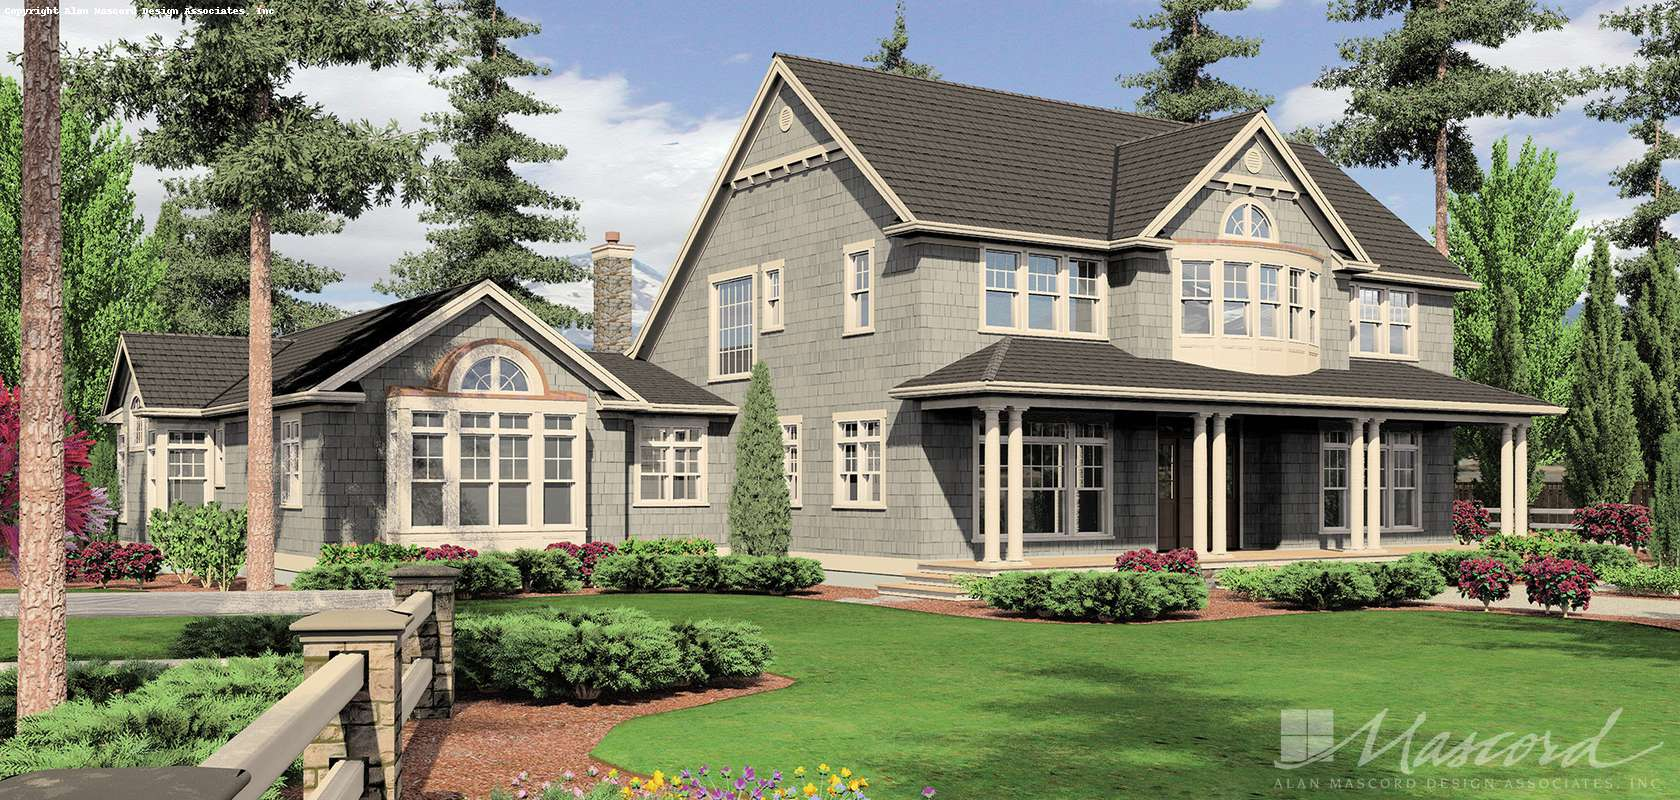 Mascord House Plan B2443: The Seligman